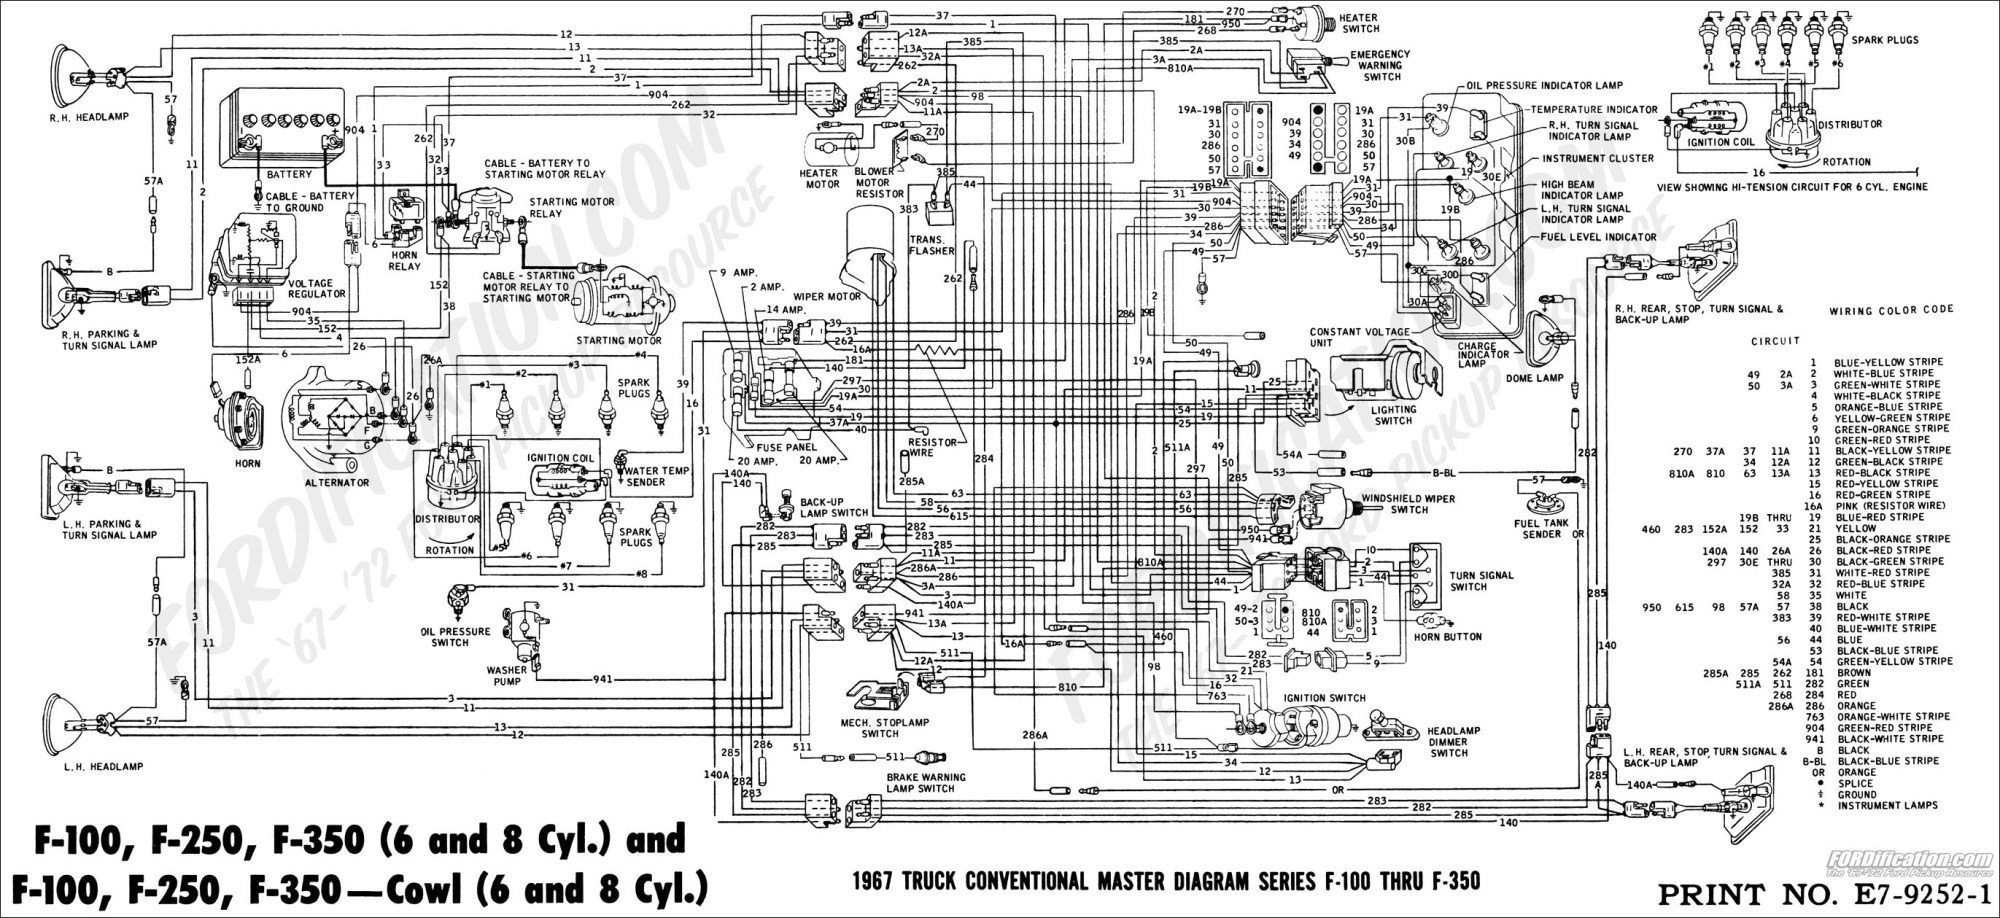 hight resolution of 1990 e350 wiring diagram simple wiring schema simple wiring schematics 1992 e350 wiring diagram data wiring